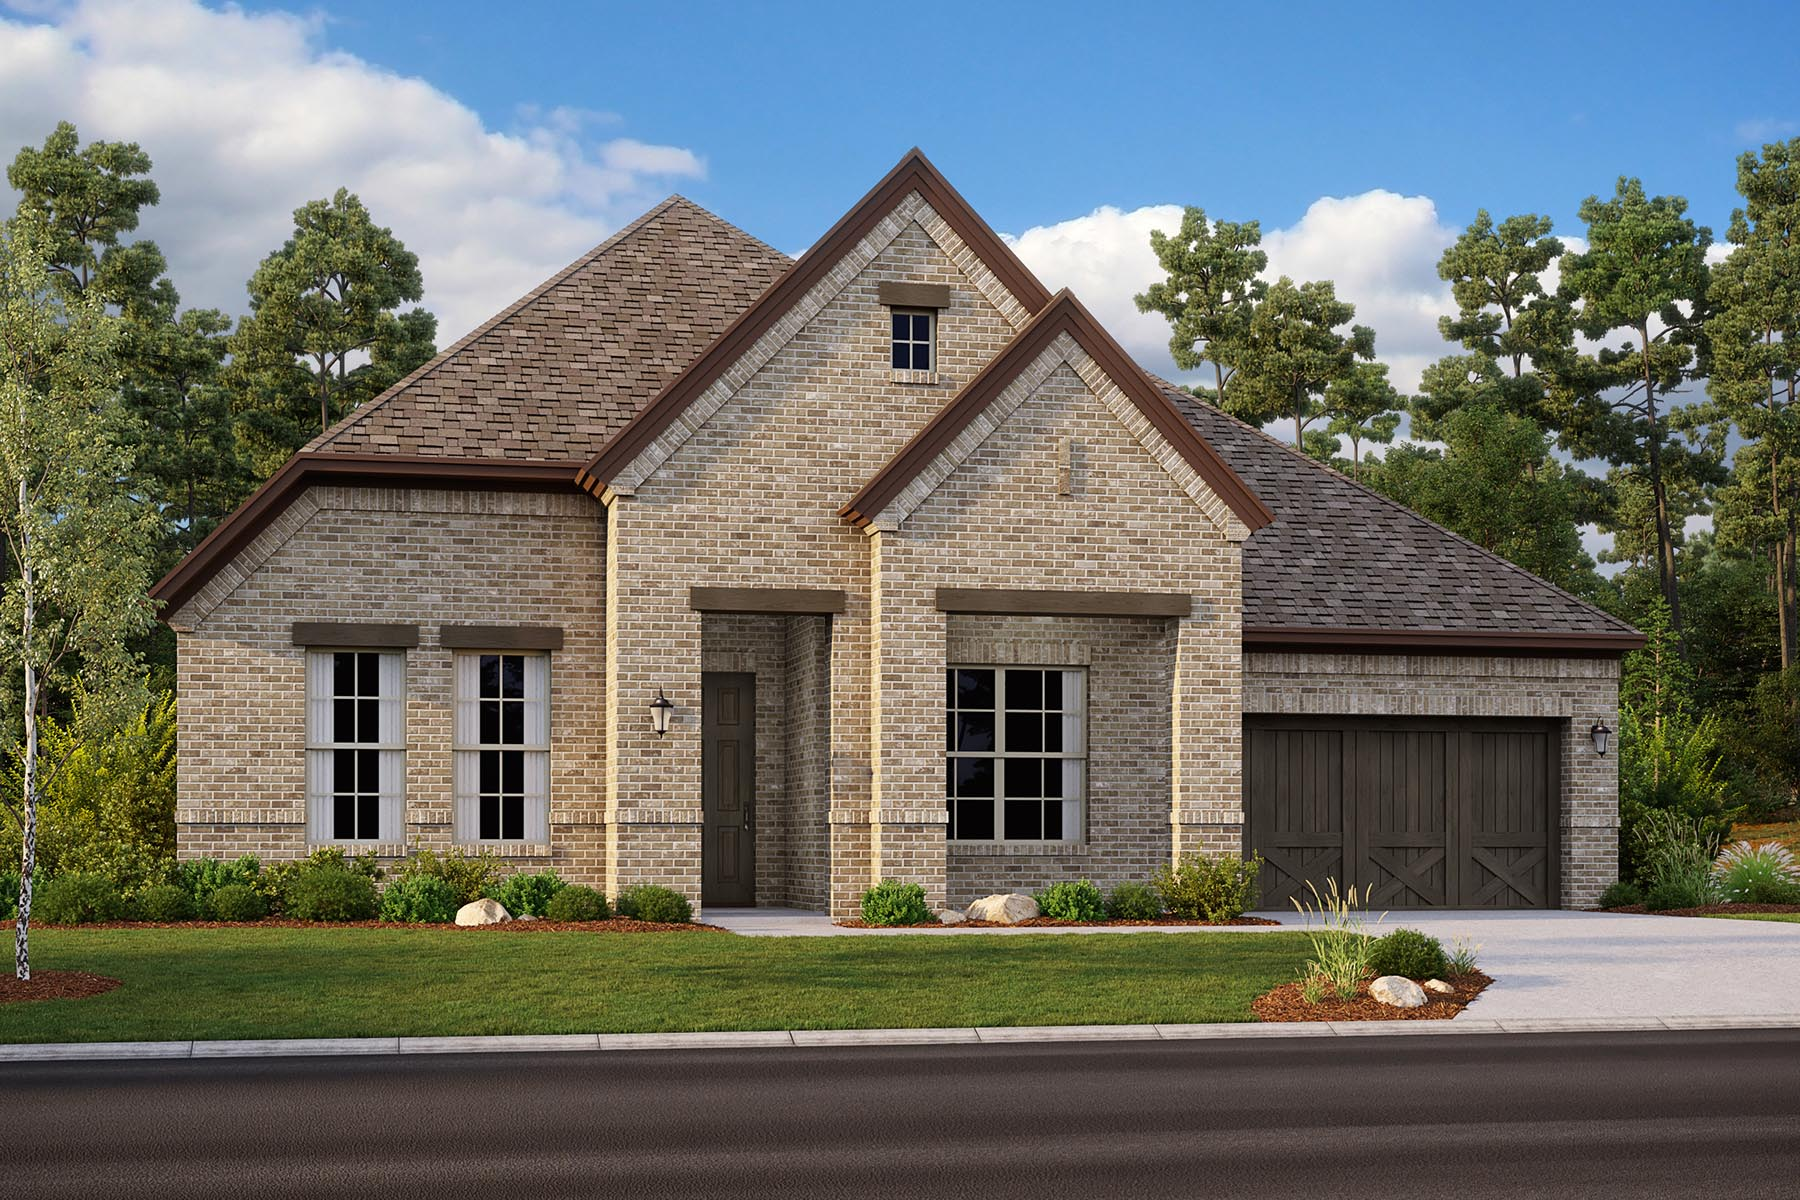 Avery II Plan DAL_Avery_ElevationH_1800x1200 at Villages of Hurricane Creek in Anna Texas by Mattamy Homes